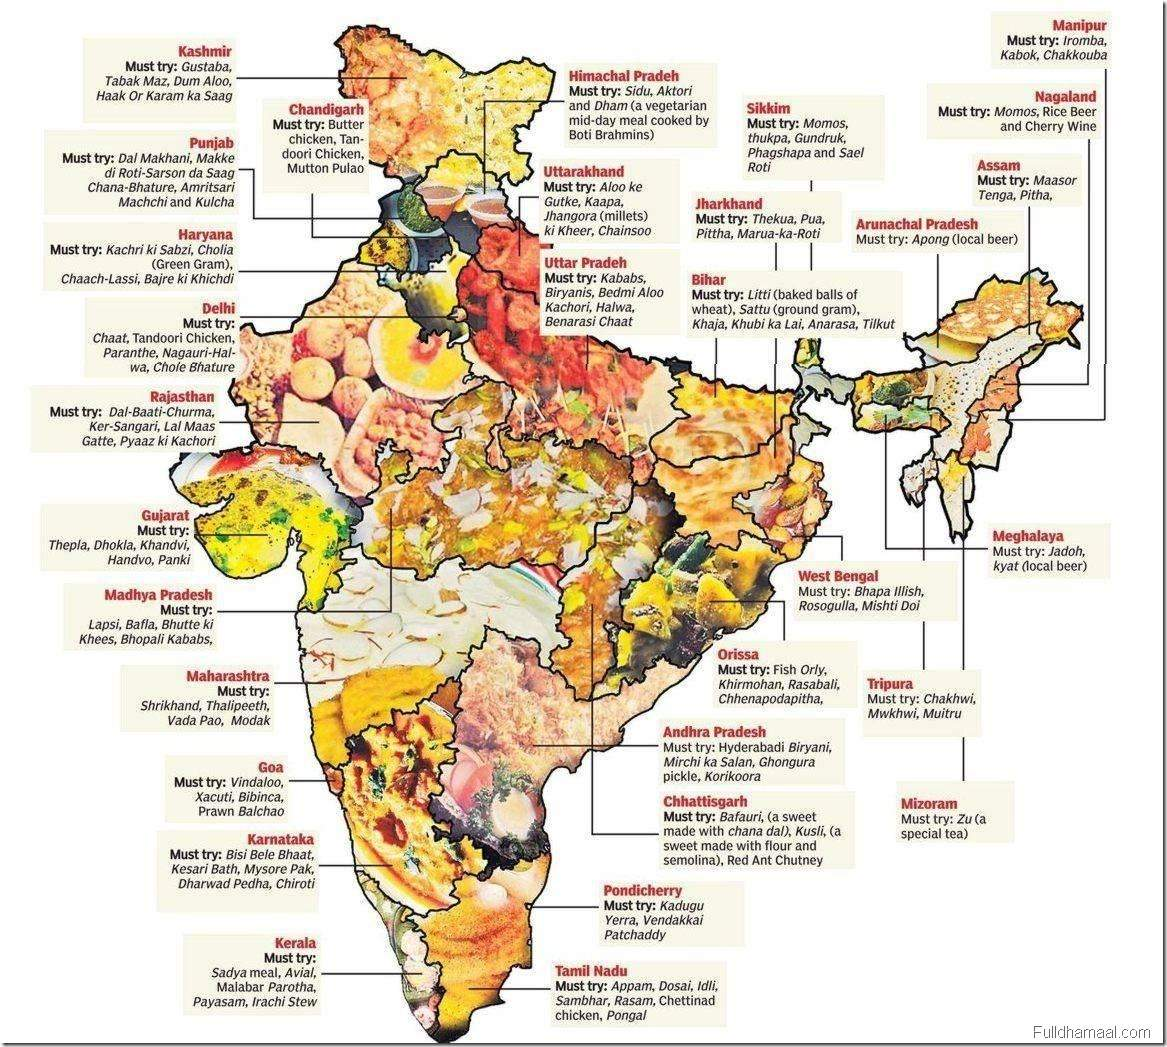 Eating through India: 26 culinary gems from each of India's states on india map colors, india geography, india physical and political map, india central states, india tamil culture, india states and cities, india political map 2013, a map of states and confederate border states, india plate map, india on map, india under british rule, india city, india map mauryan empire, 2014 india map states, india caste system map, india map outline, india flag peace symbol, india population map by state, india west bengal map location, india museum map,